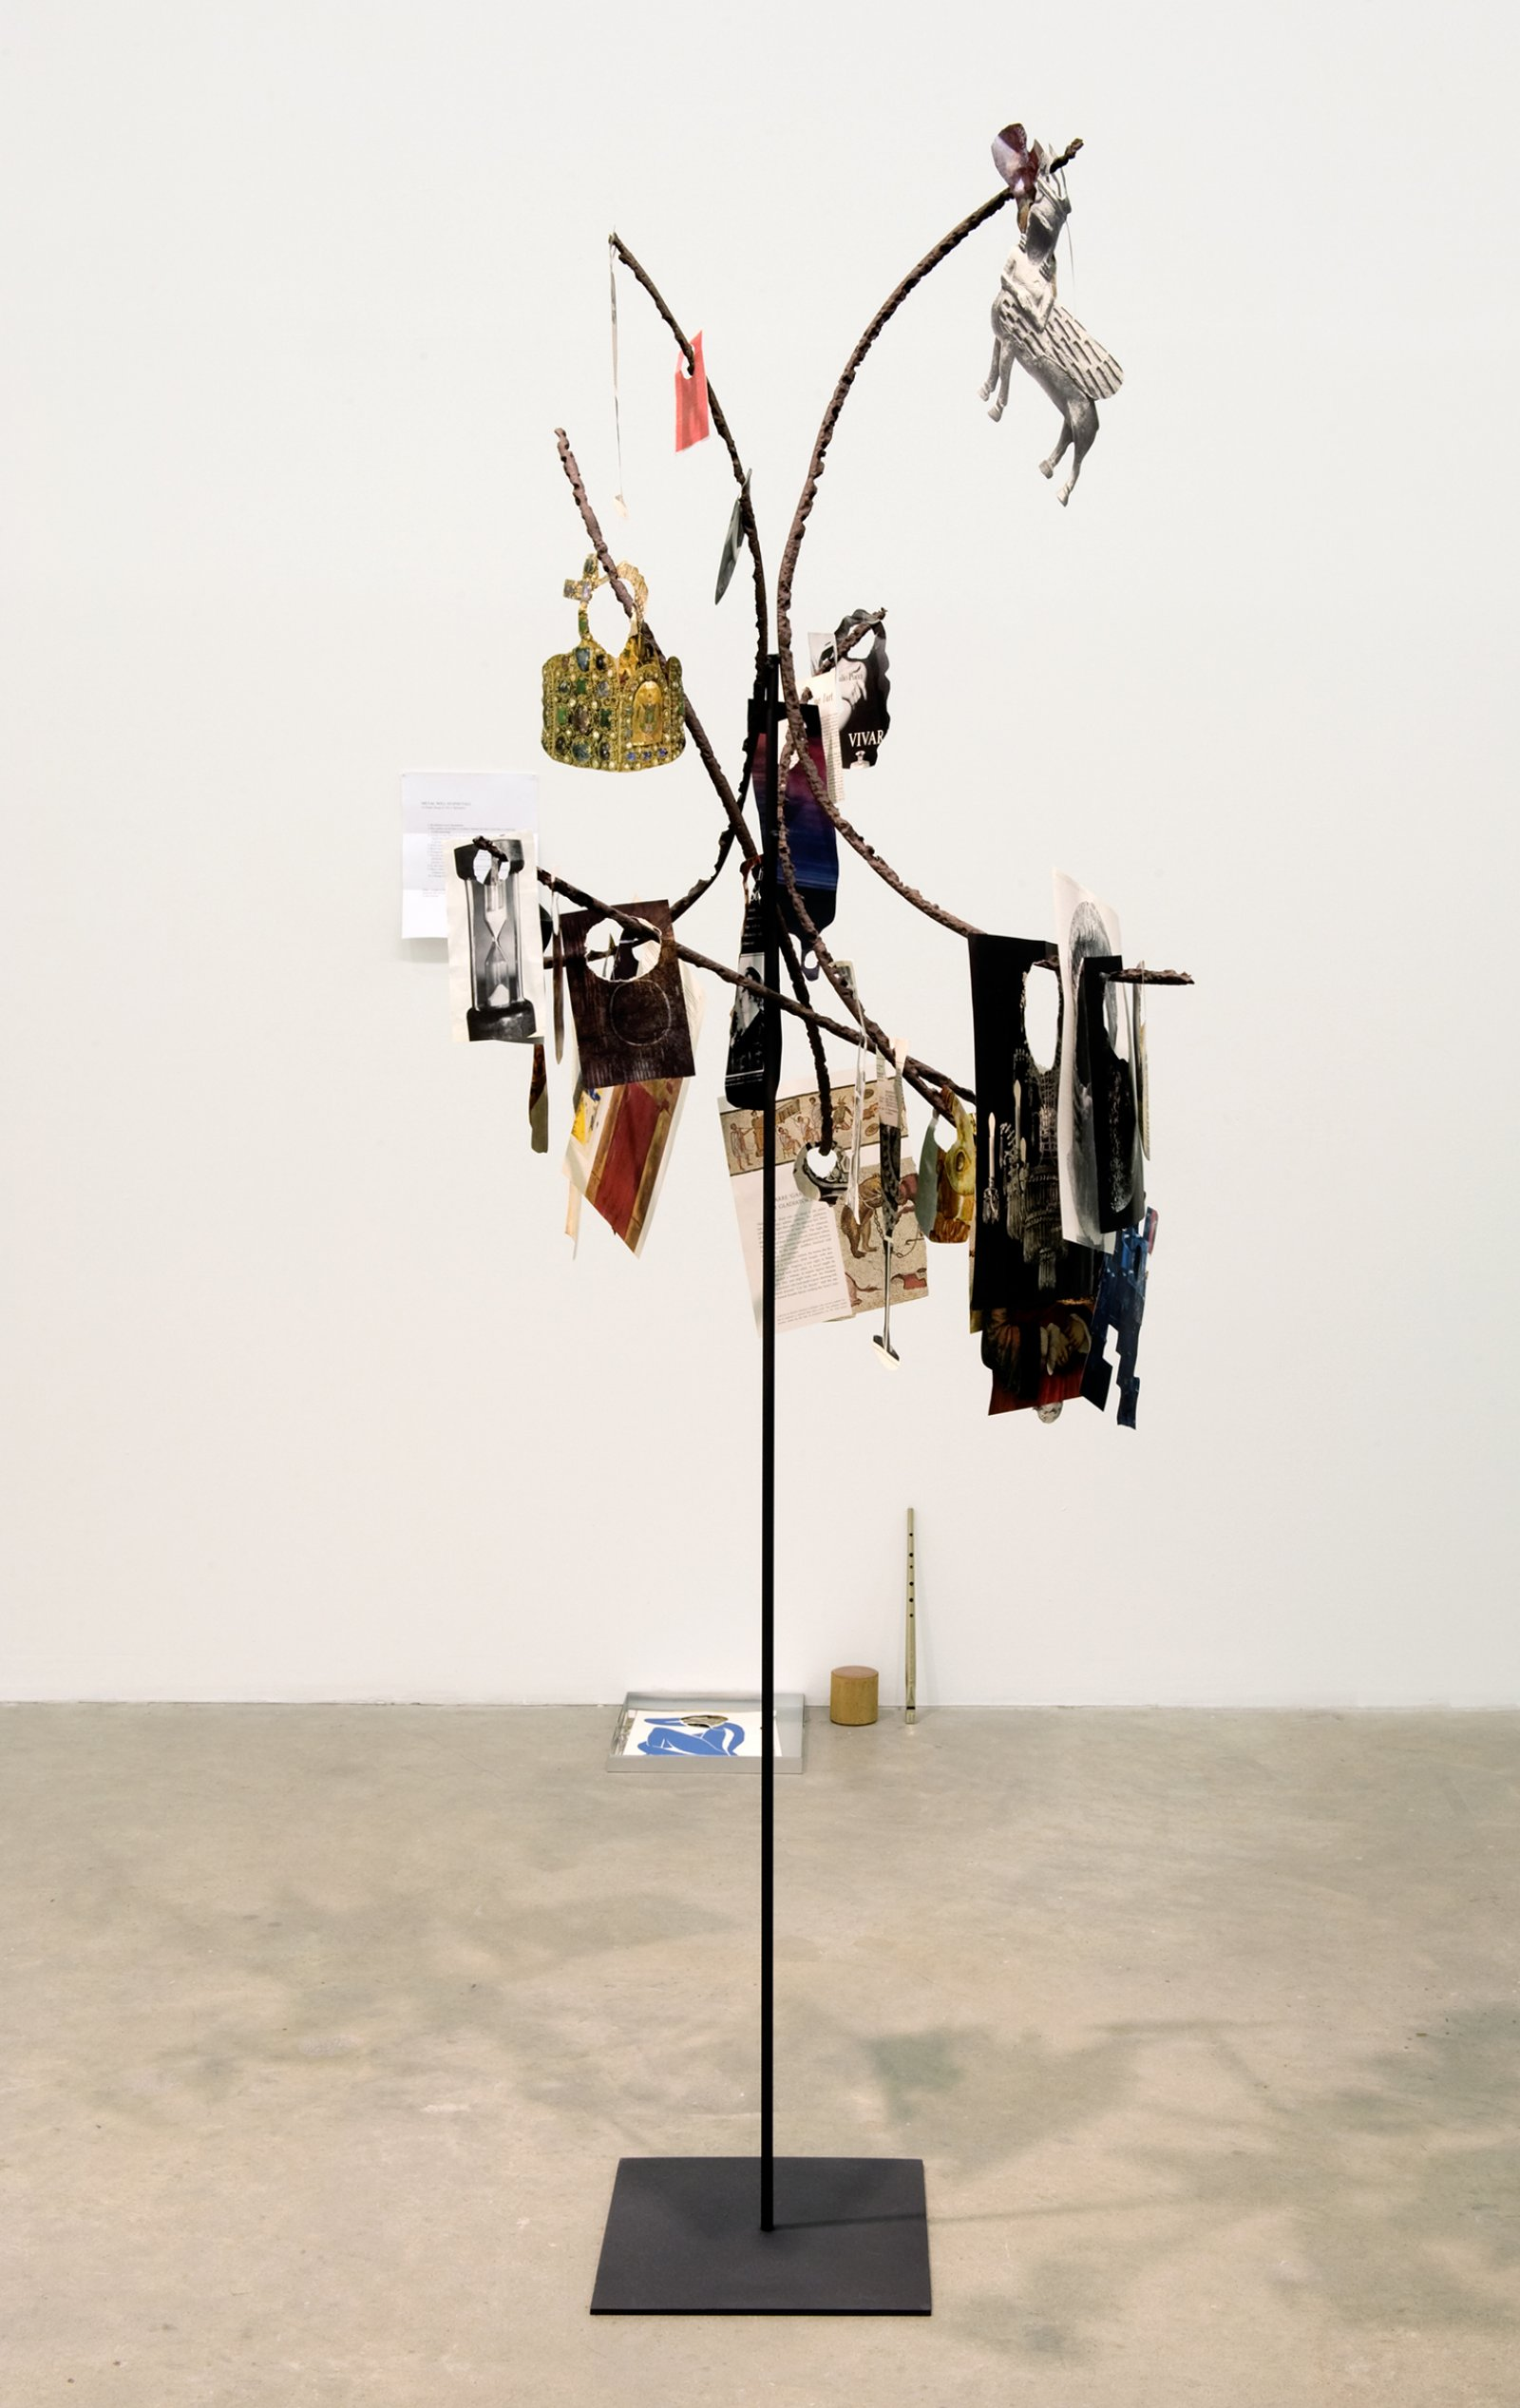 Geoffrey Farmer,Metal Will Stand Tall (A Single Image Is Not A Splendor), 2011–2012, found metal,LIFE Magazinecutouts, rock, wire, 69 x 39 x 28 in. (175 x 99 x 71 cm)